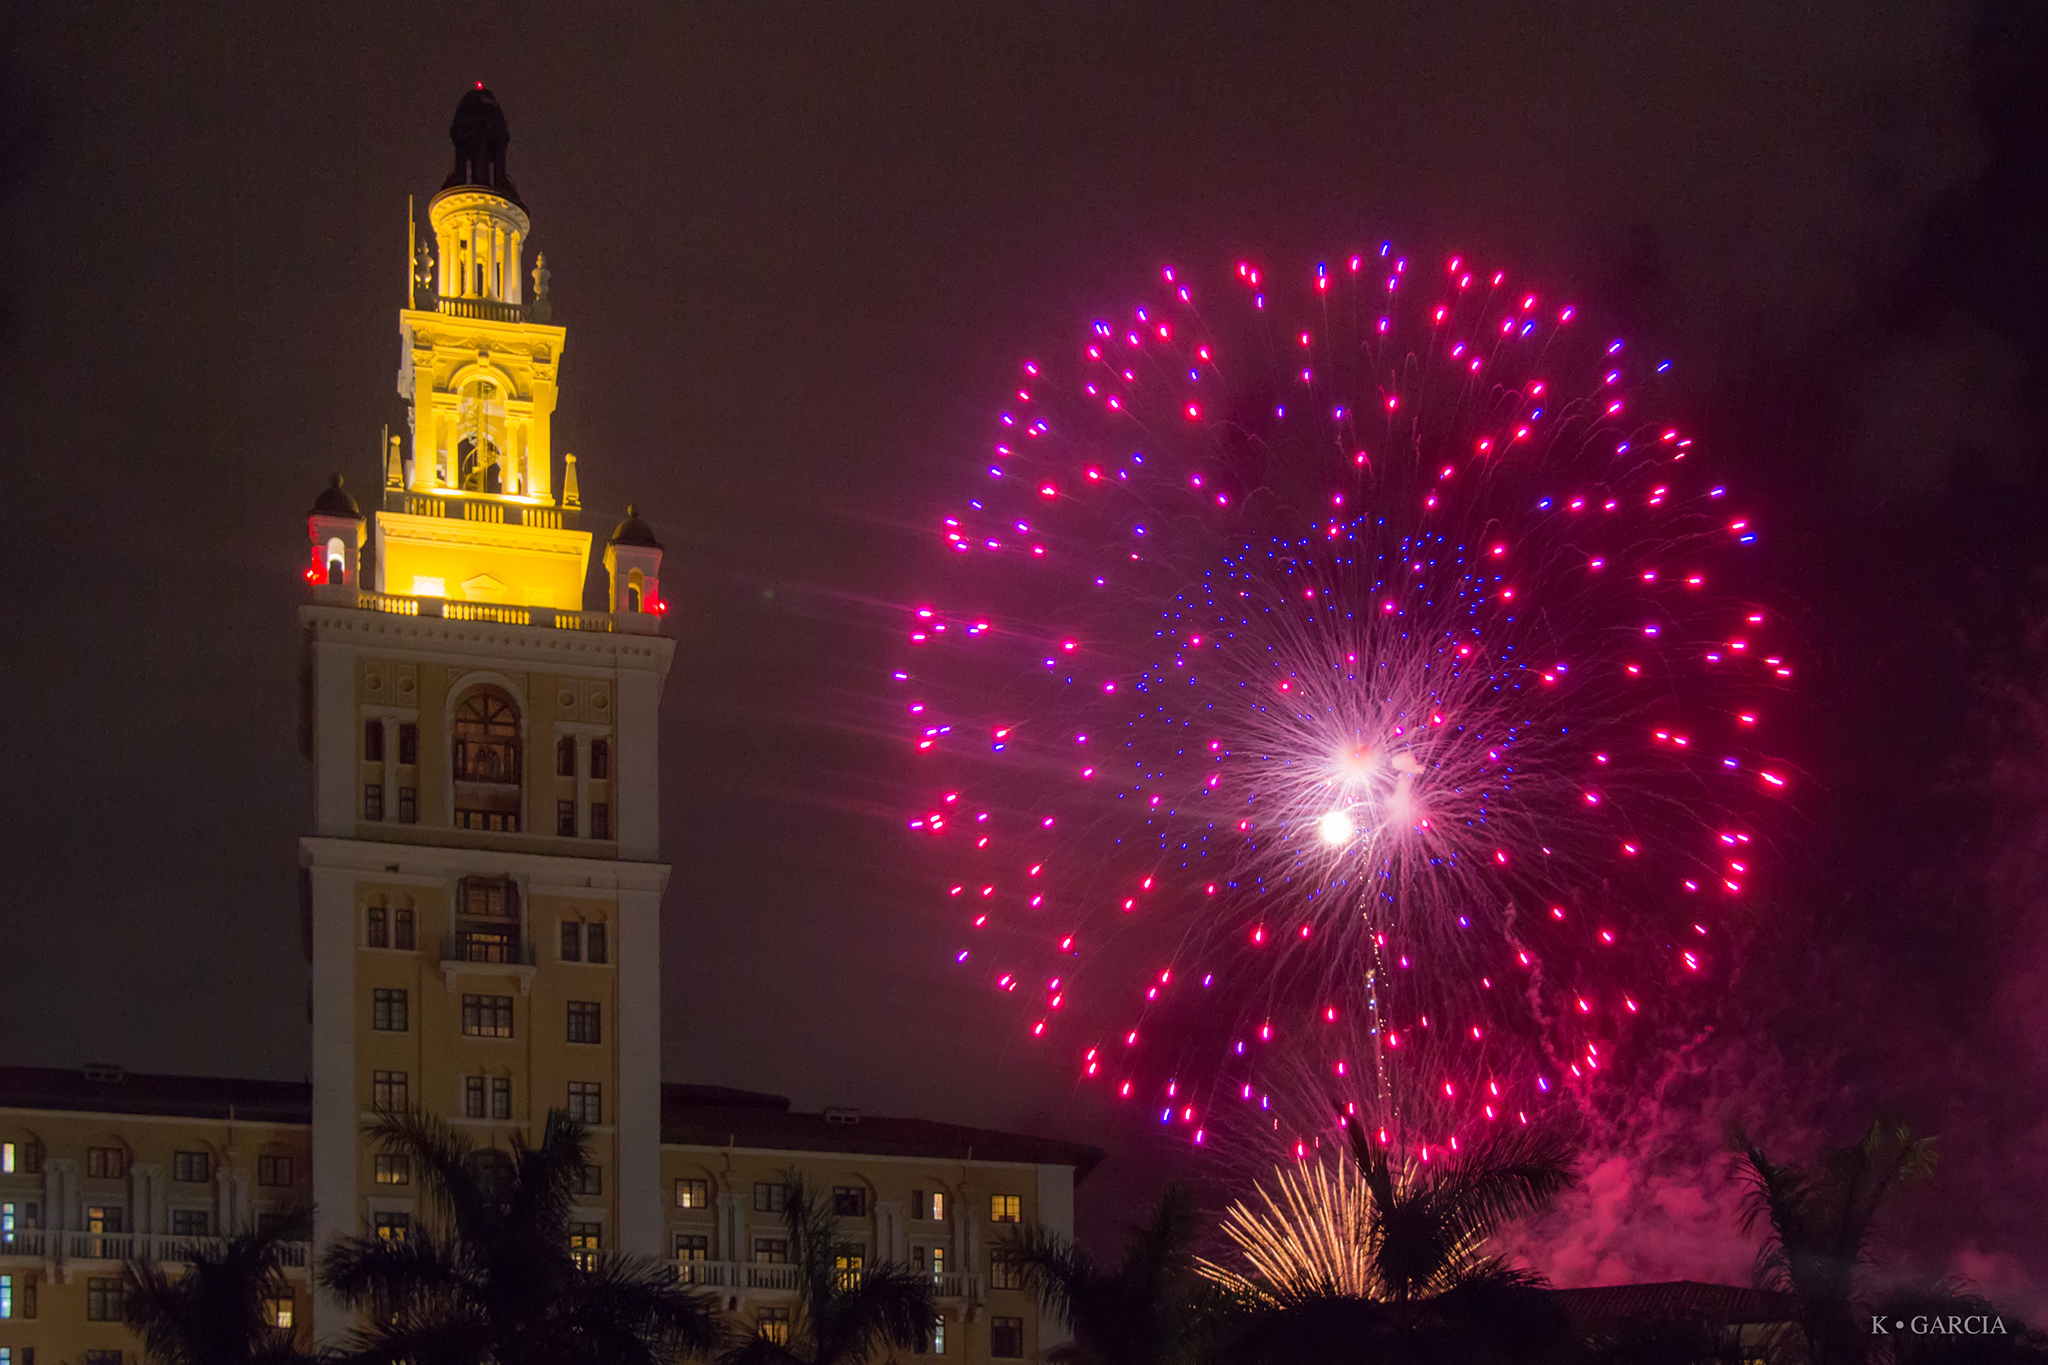 New Year's Eve at the Biltmore Hotel